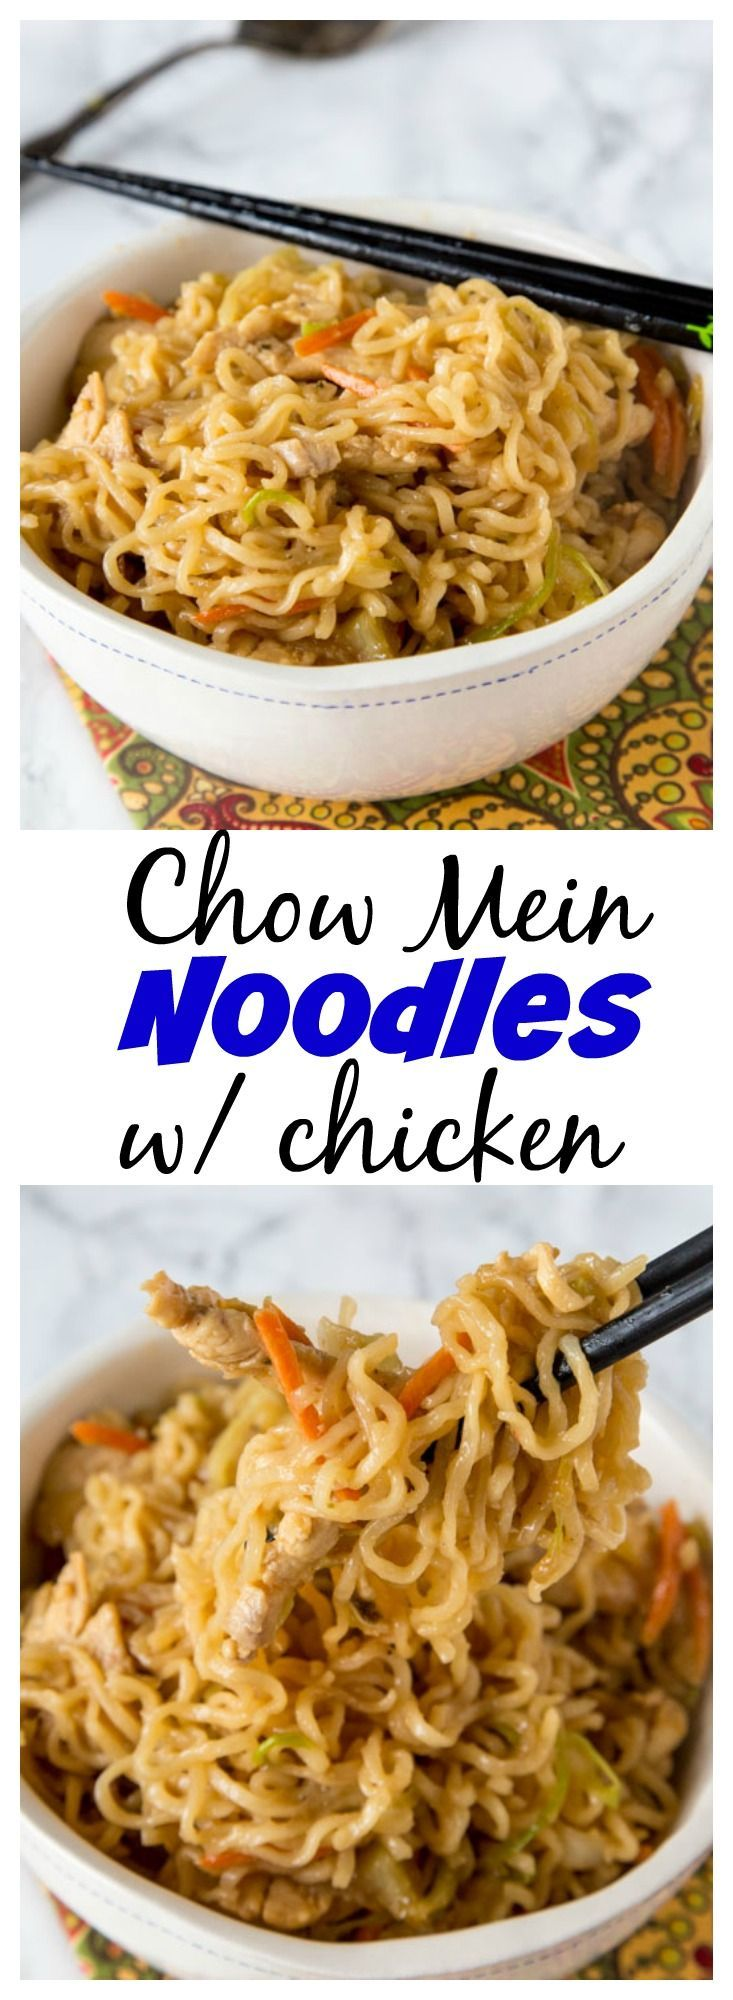 Chow Mein Noodles with Chicken is an easy recipe to get dinner on the table in minutes.  So much better than take out in the same amount of time!